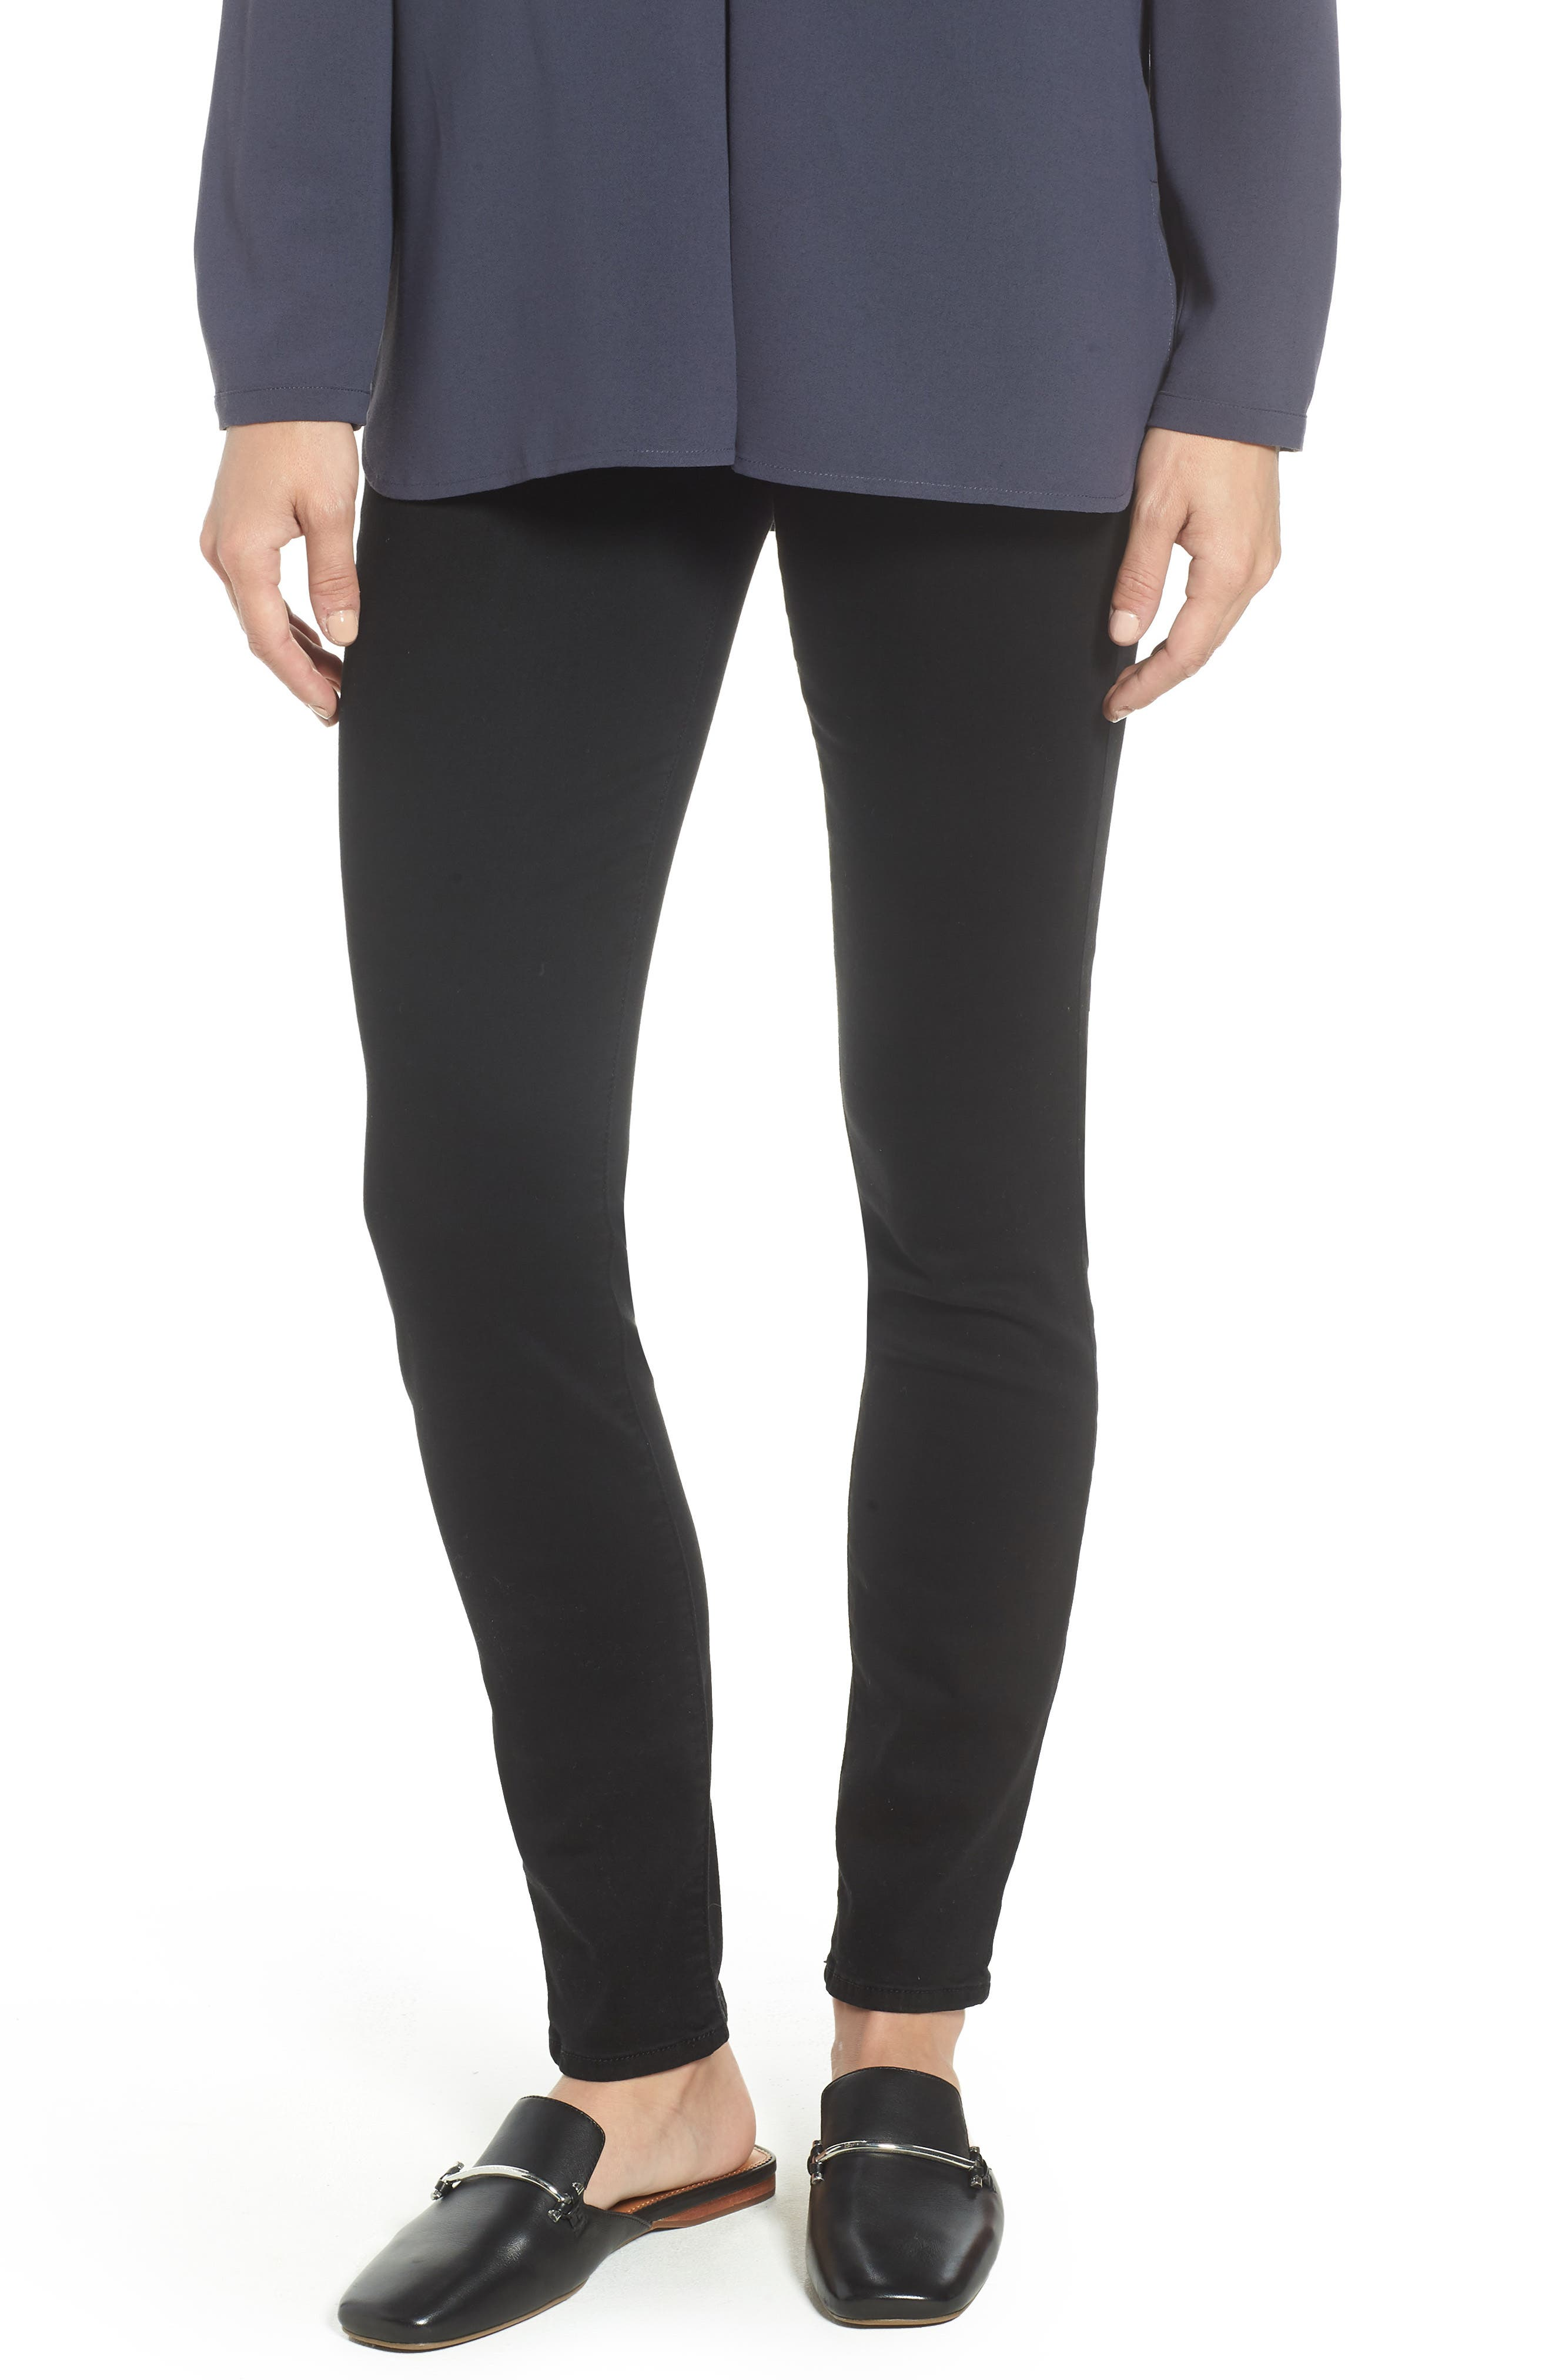 Comfort Skinny Denim Leggings,                         Main,                         color, RICHE TOUCH BLACK NOIR